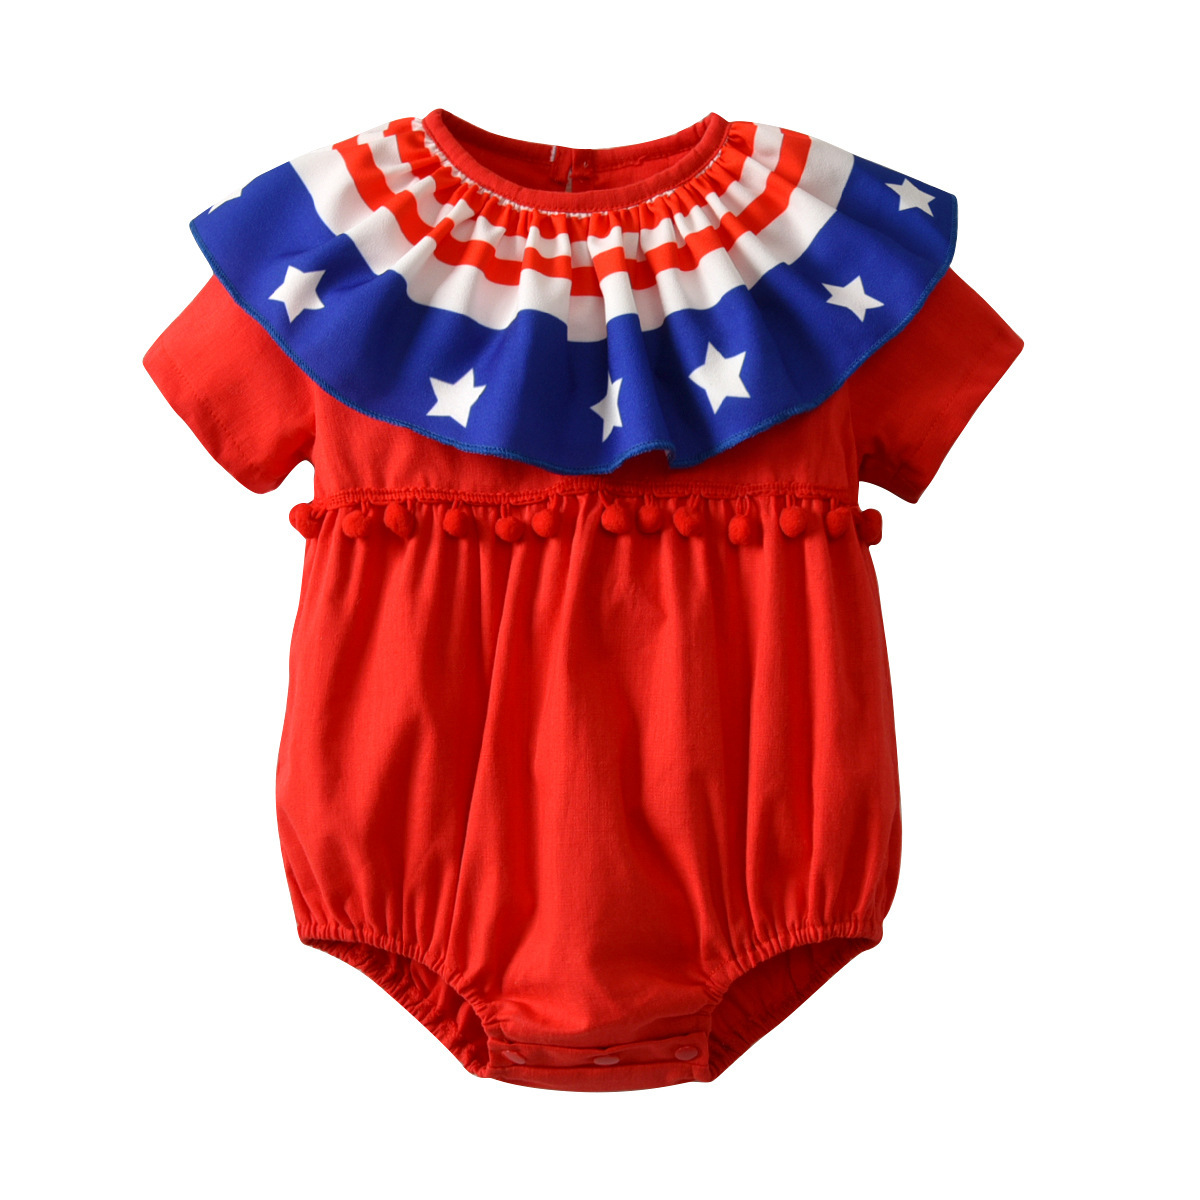 2018 Summer New Fashion Newborn Baby Girl Rompers Onesie Infant Short Sleeve U.S.A Independence Day Festival Pudcoco Tiny Cotton